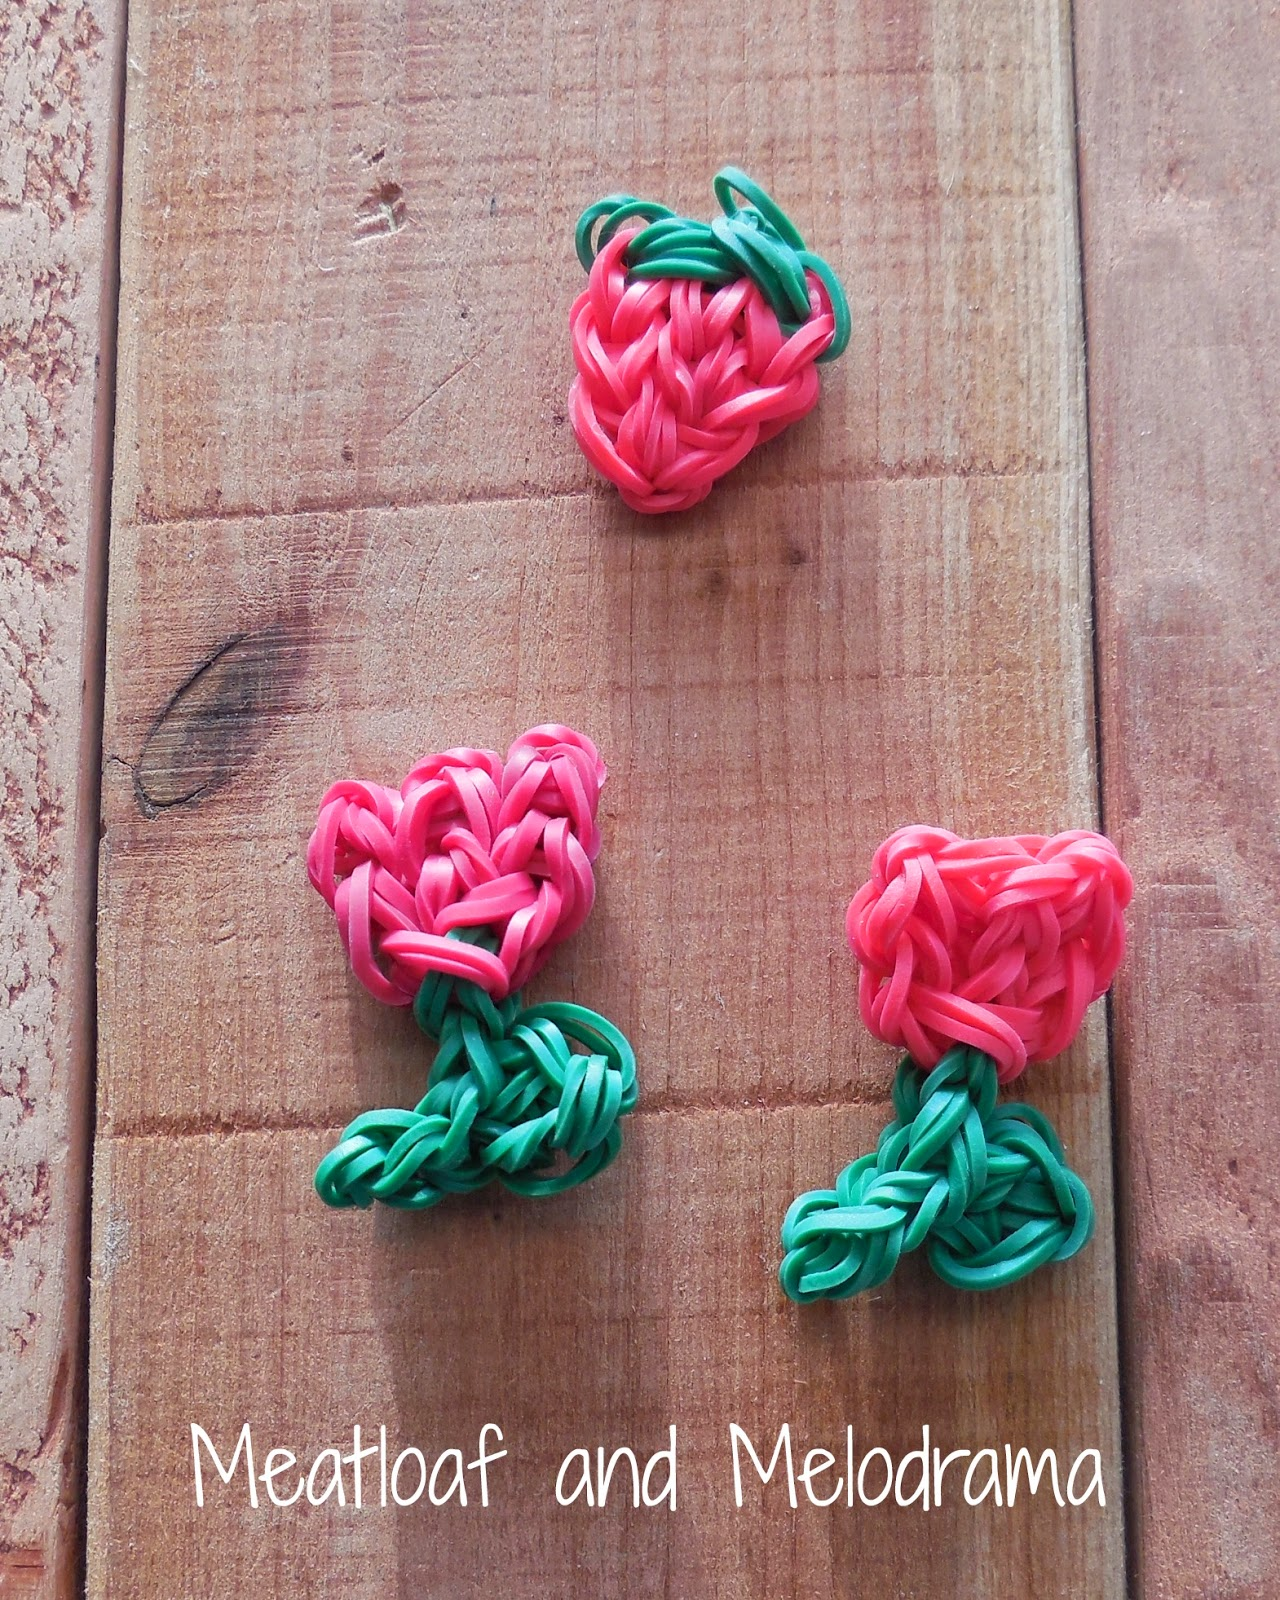 Rainbow Loom strawberry, tulip and rose charms